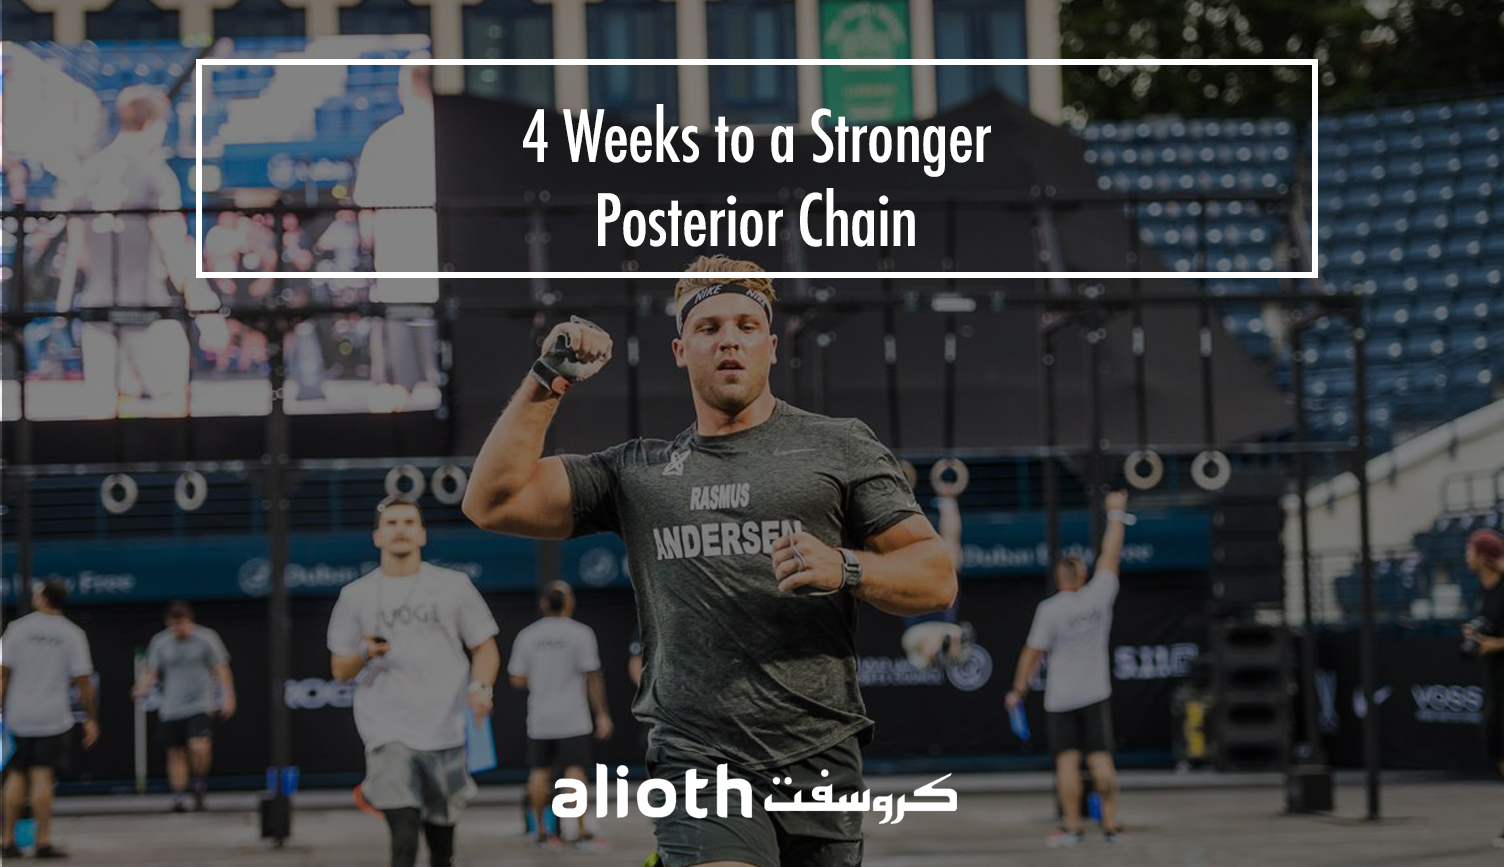 Subscribe below to receive a 4-week plan to strengthen your posterior chain.